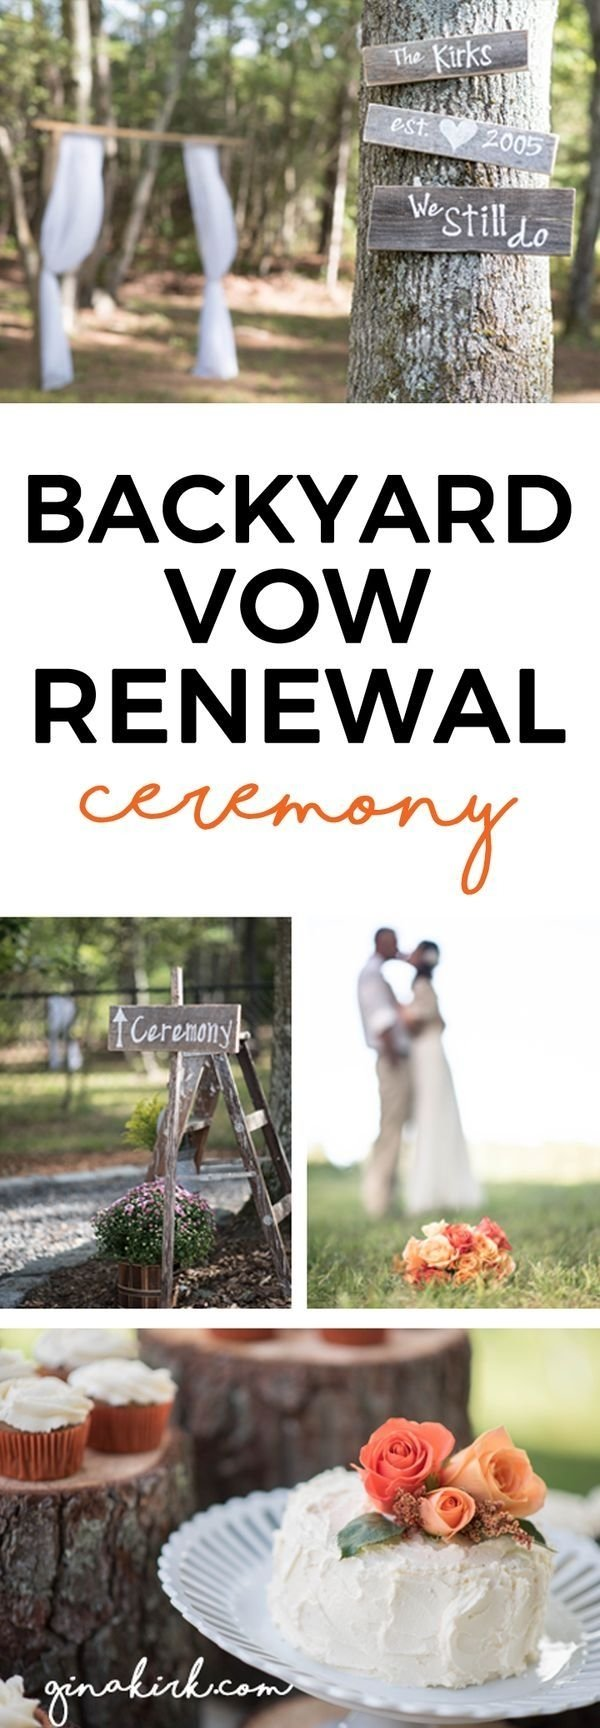 10 Nice 10 Year Wedding Anniversary Party Ideas celebrating 10 years our backyard vow renewal vintage diy 1